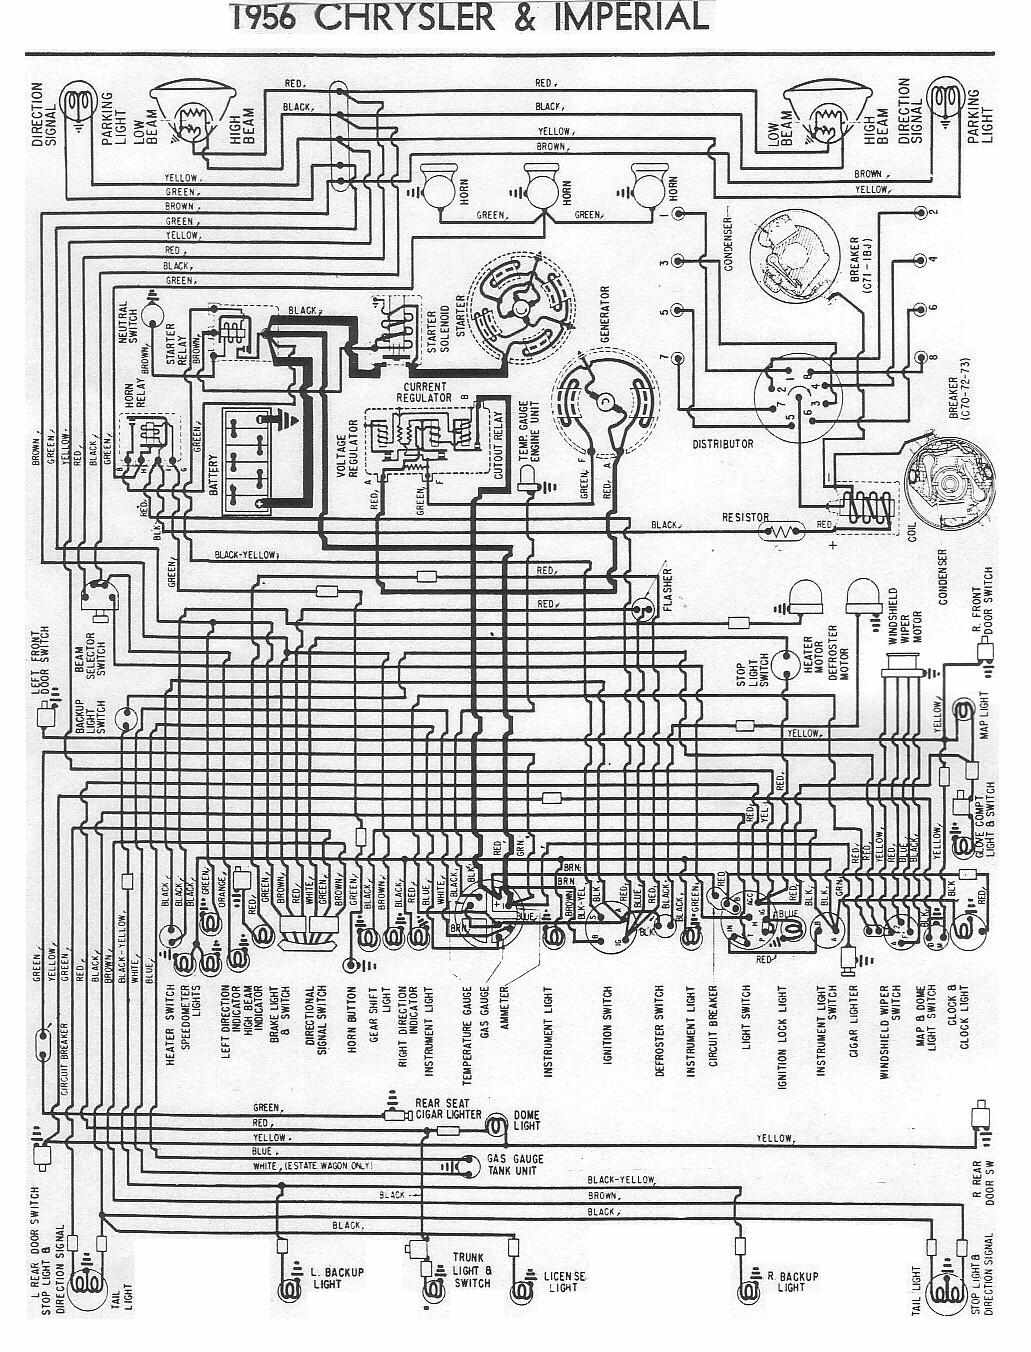 1956 chrysler wiring diagram online schematic diagram u2022 rh holyoak co 1959 Cadillac 1958 Cadillac